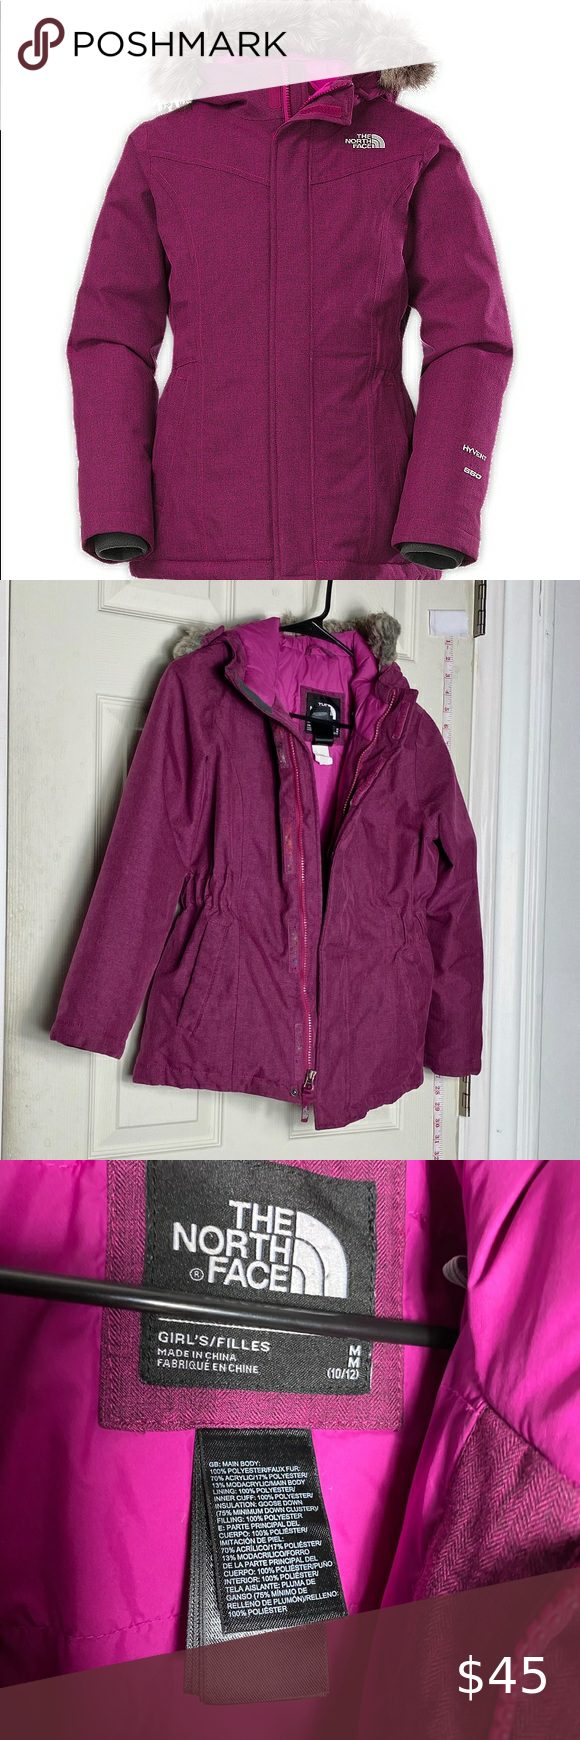 The North Face Purple Girls 10 12 Parka Jacket Jackets Parka Jacket Girls Jacket [ 1740 x 580 Pixel ]